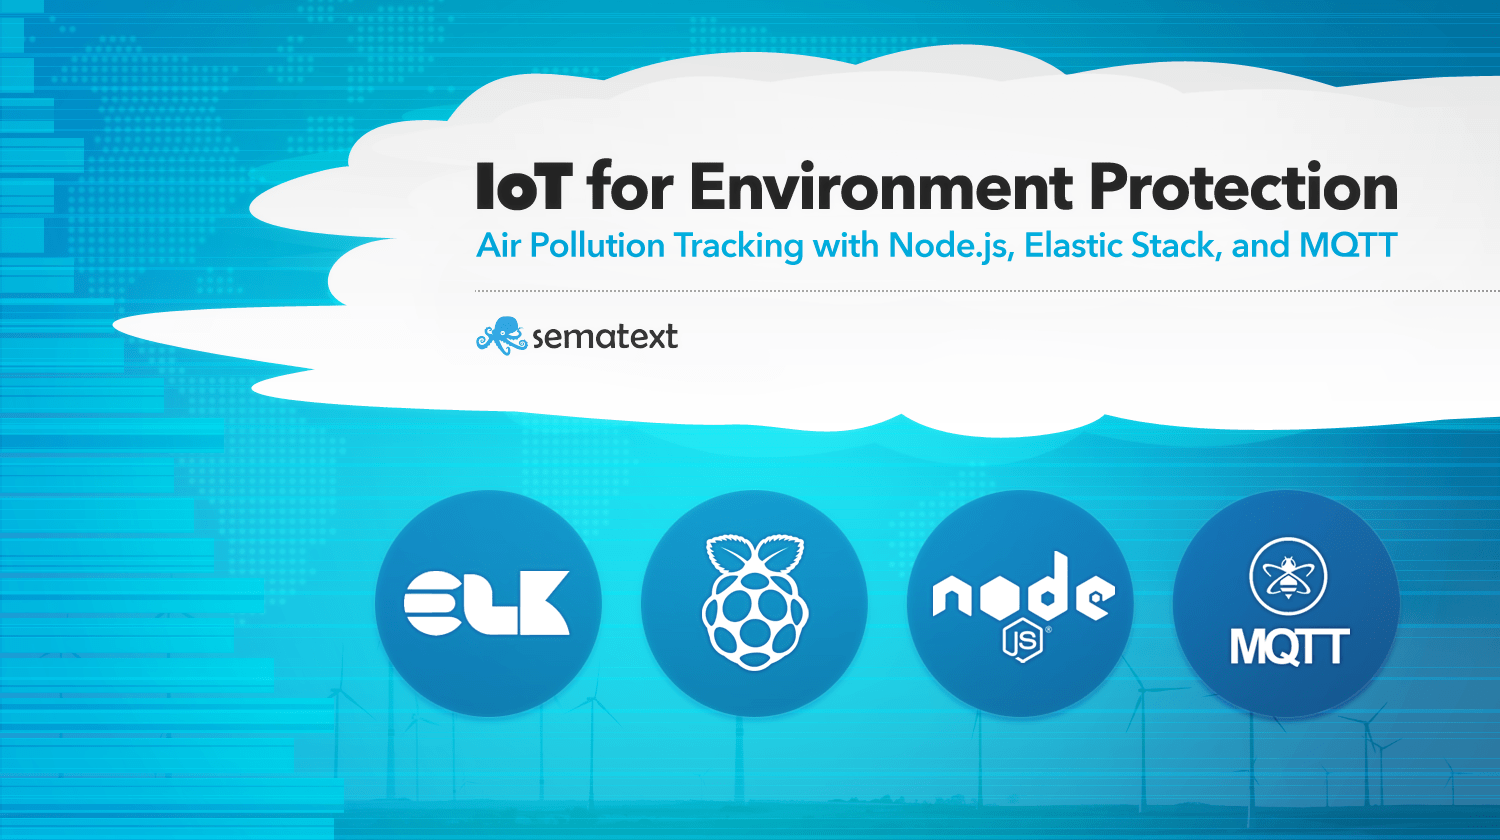 IoT: Air Pollution Tracking with Node js, Elastic Stack, and